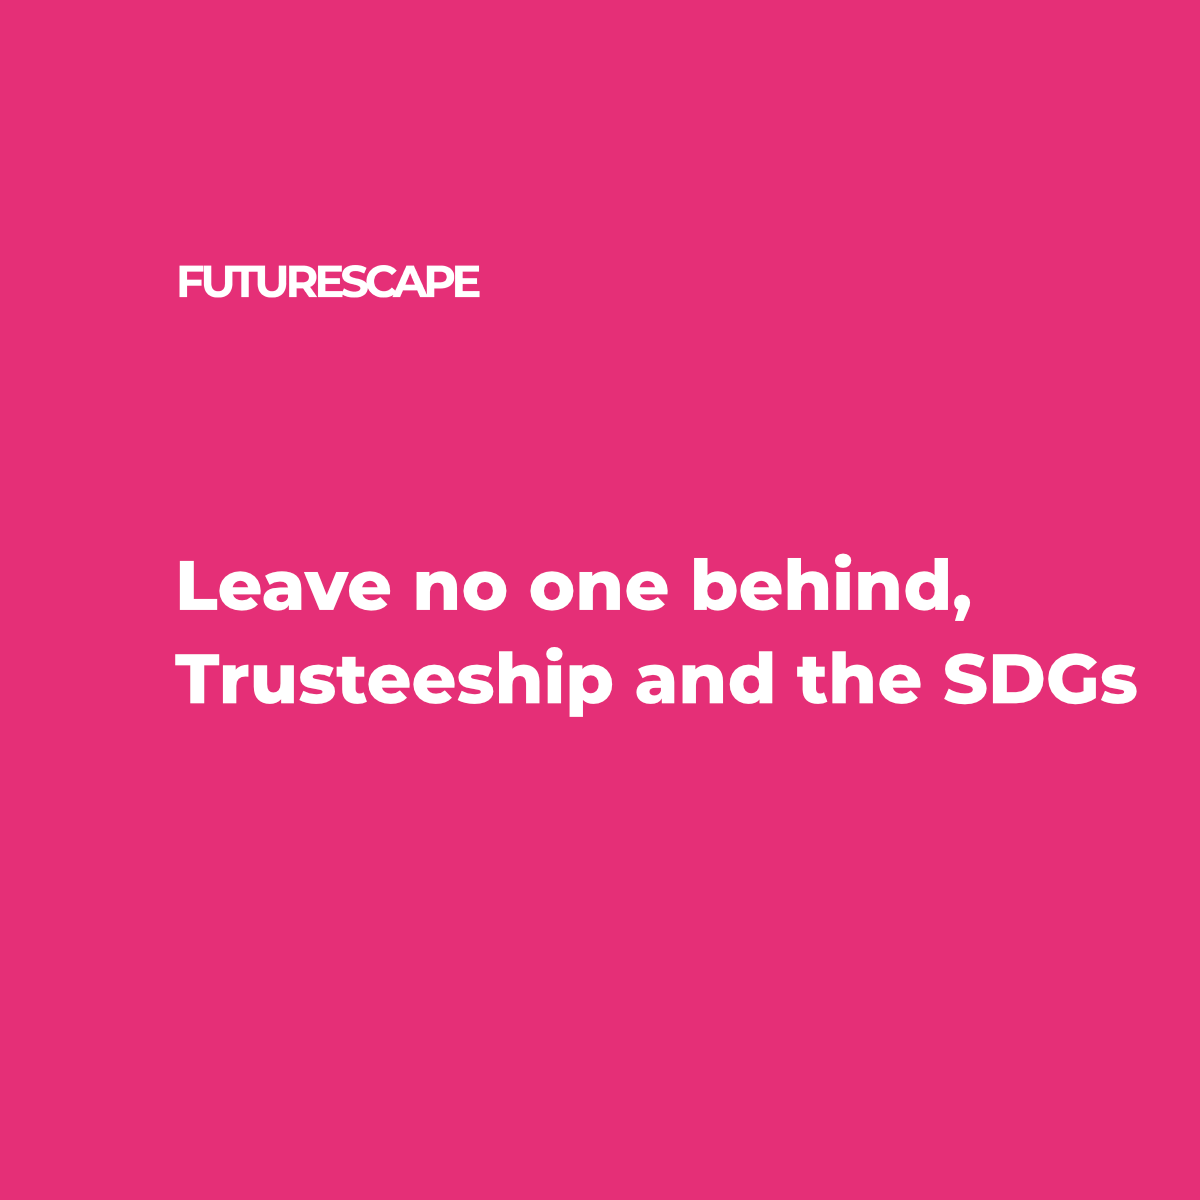 Leave no one behind-SDG-TW